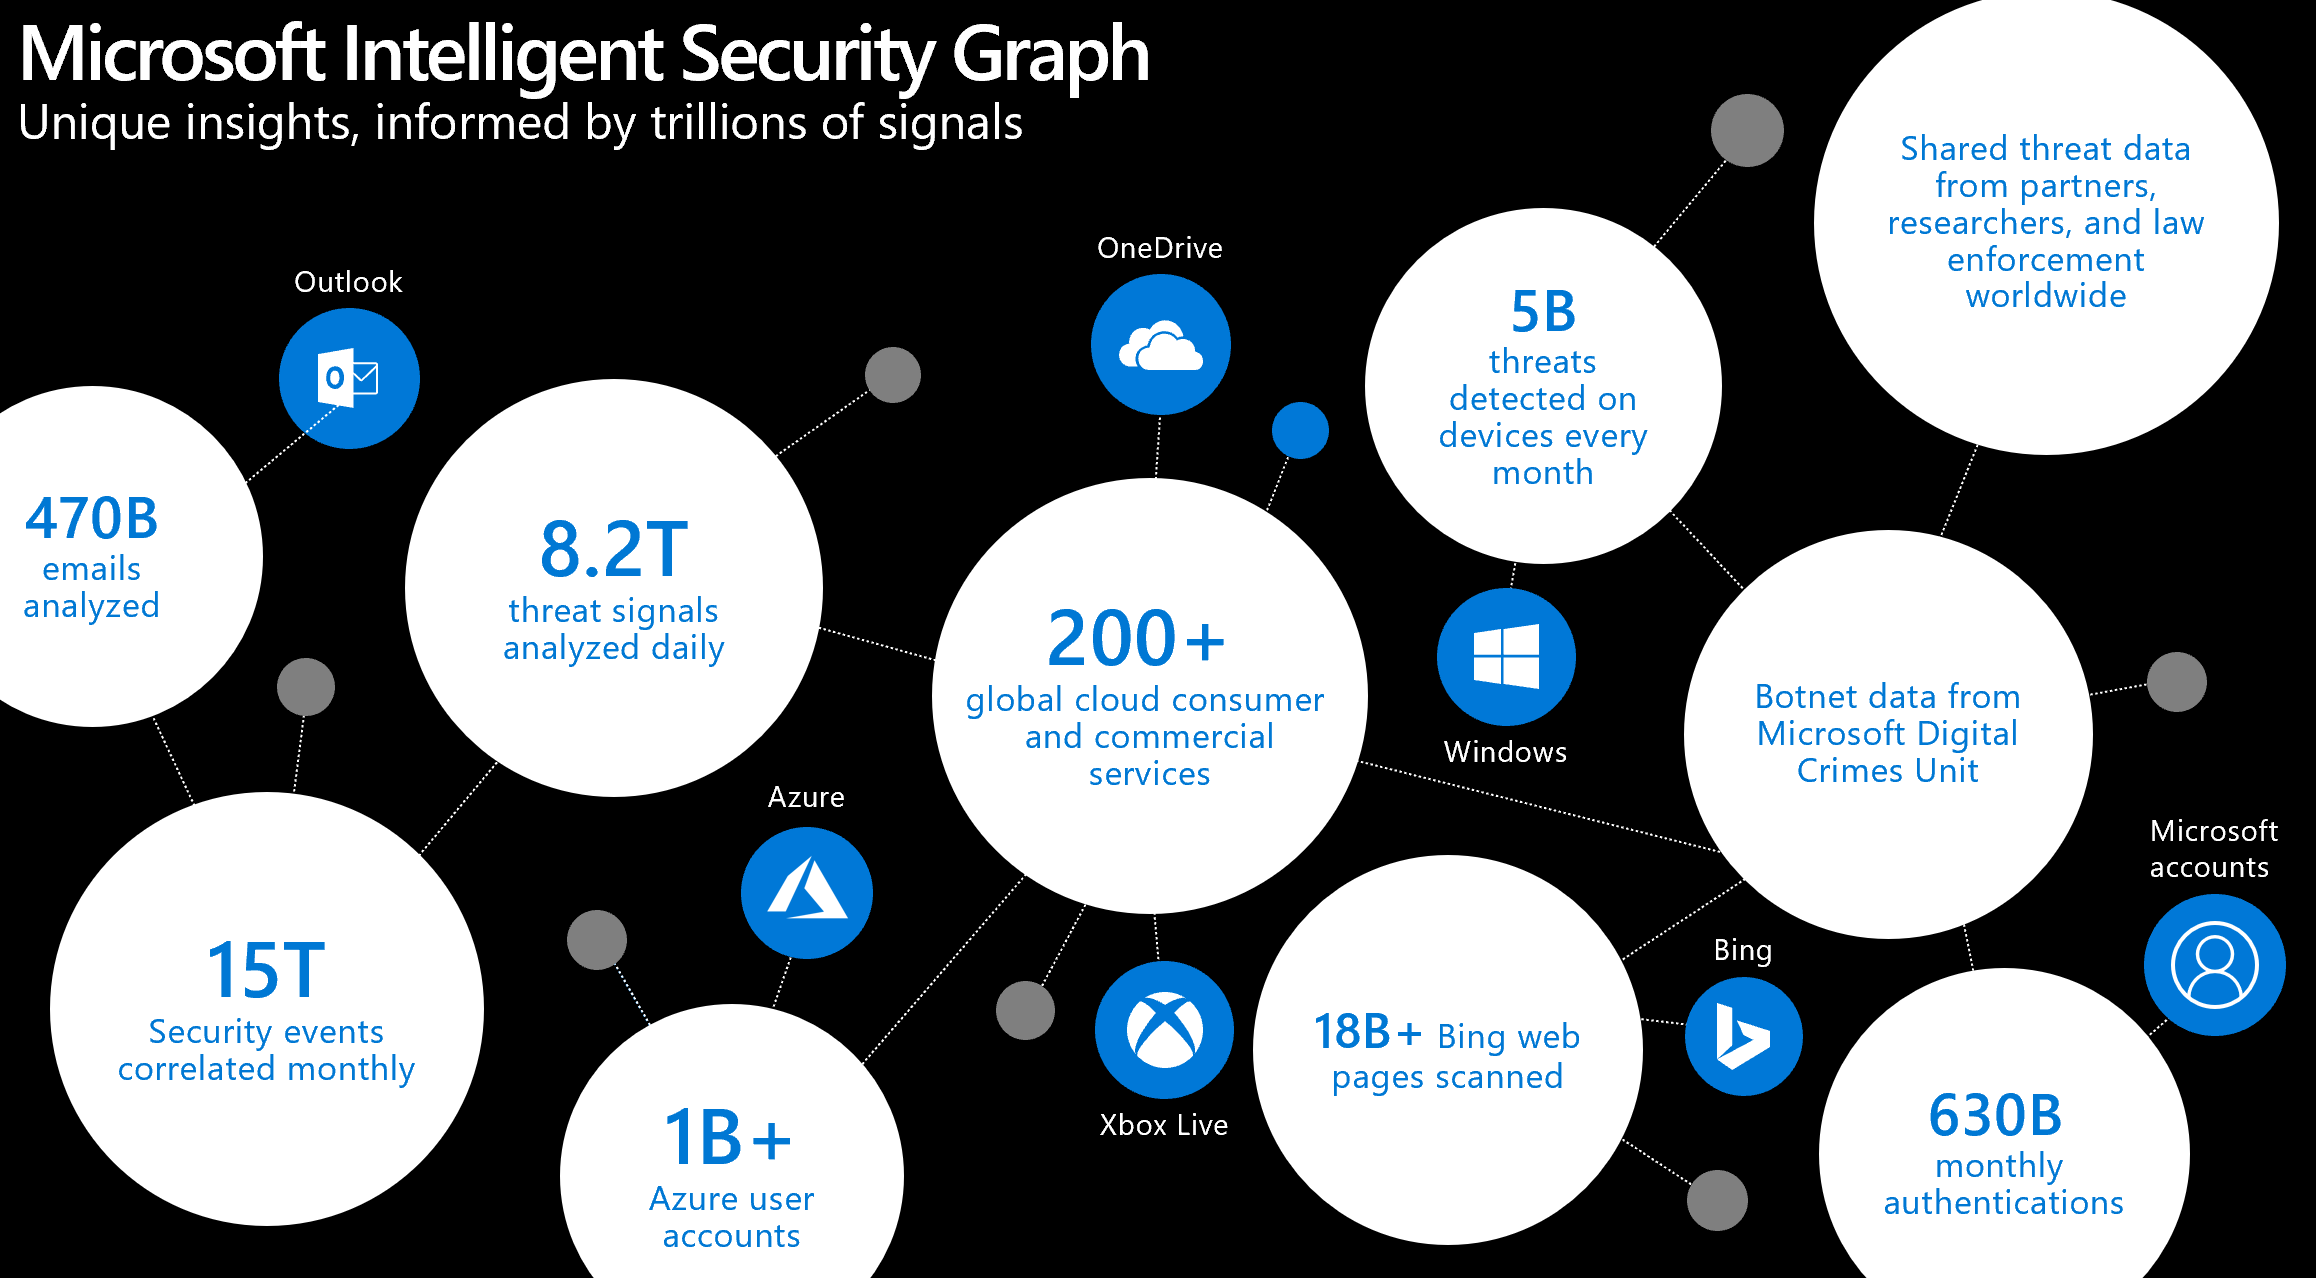 Infographic showing the Microsoft Intelligent Security Graph: unique insights, informed by trillions of signals from Outlook, OneDrive, Windows, Bing, Xbox Live, Azure, and Microsoft accounts.